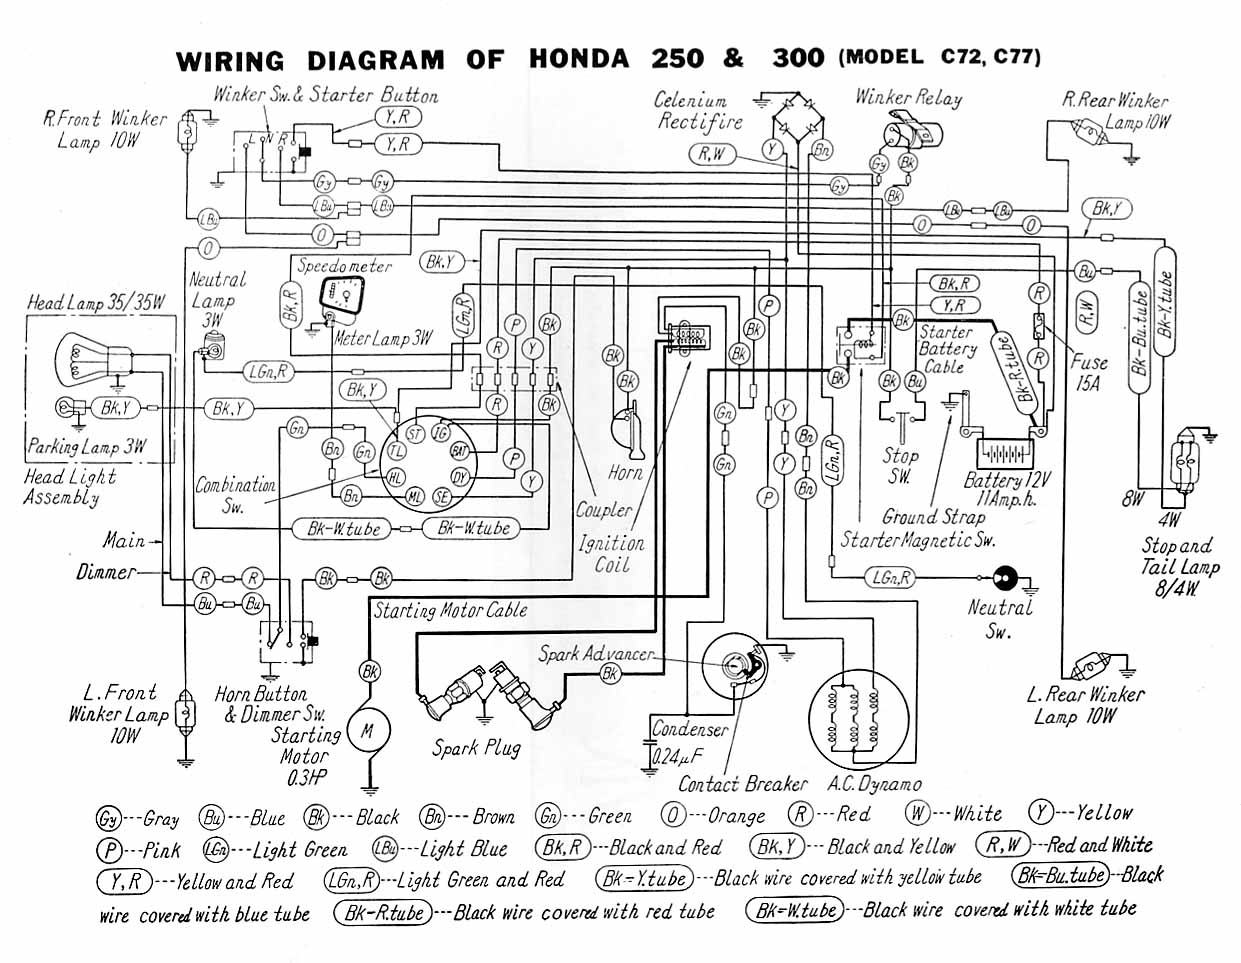 hight resolution of wiring diagrams rh oregonmotorcycleparts com suzuki cultus electrical wiring diagram suzuki cultus electrical